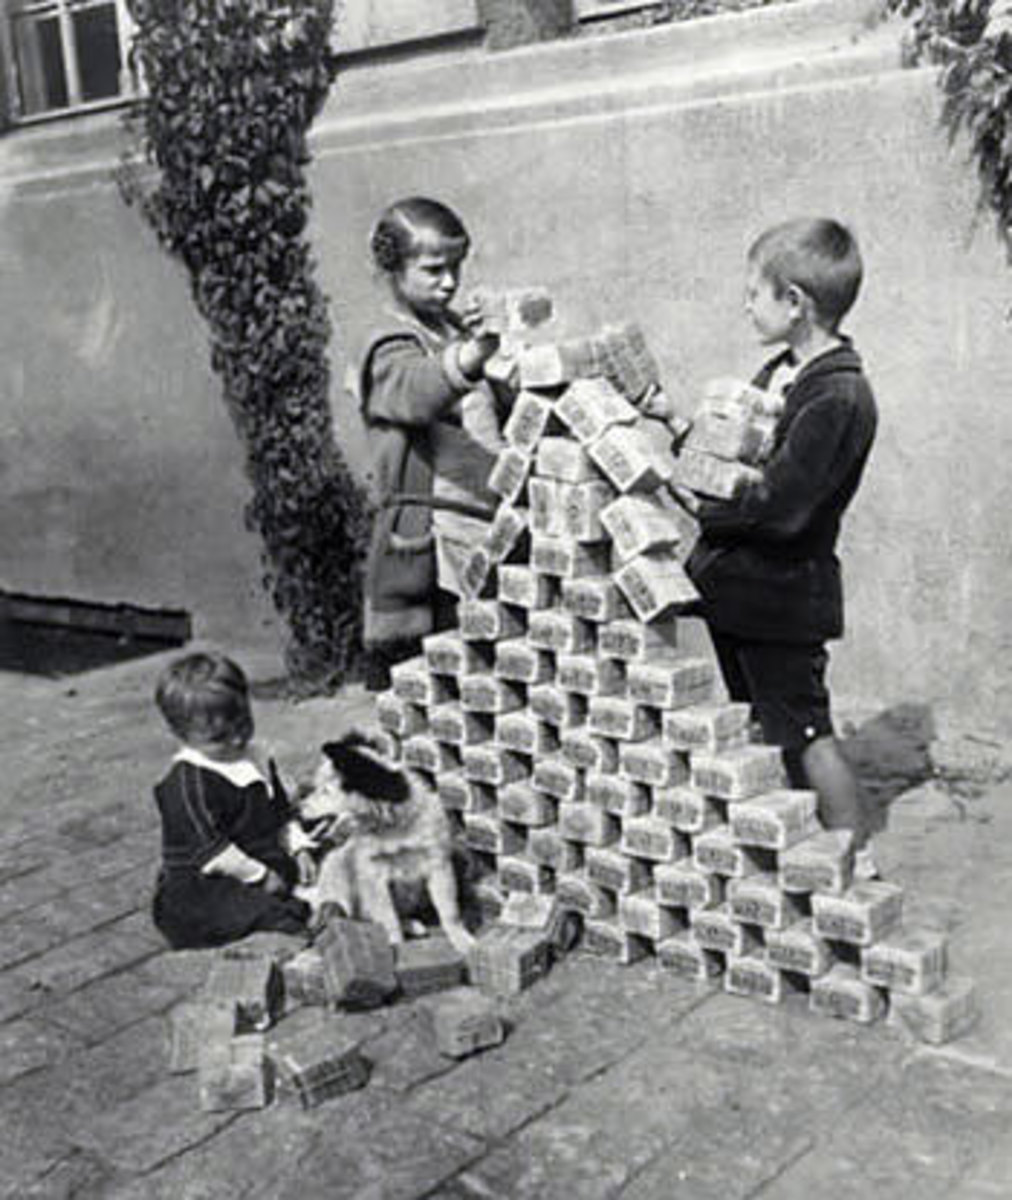 It literally took two or three of these bundles to buy food for a day. It was so worthless that children could play with bundles like blocks!